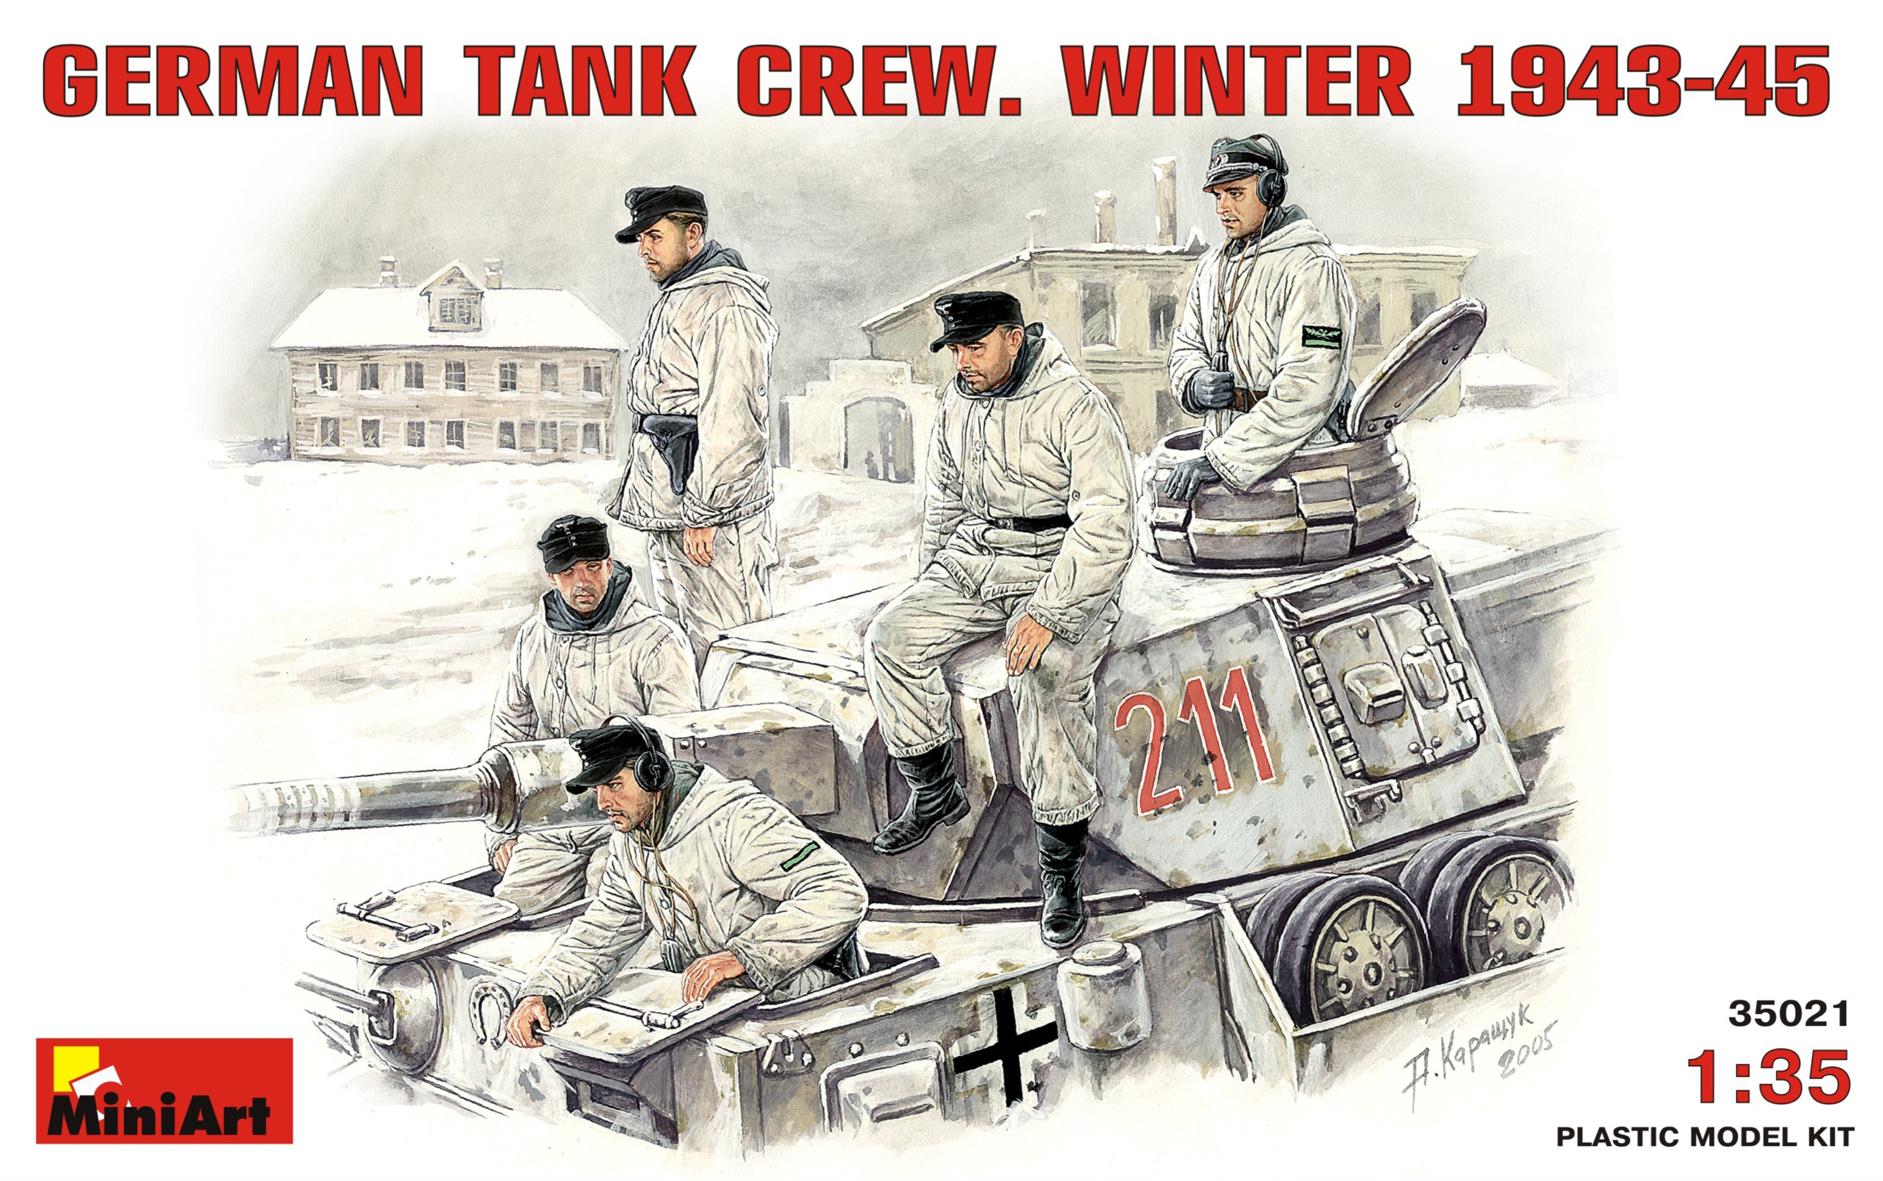 GERMAN TANK CREW. WINTER 1943-45